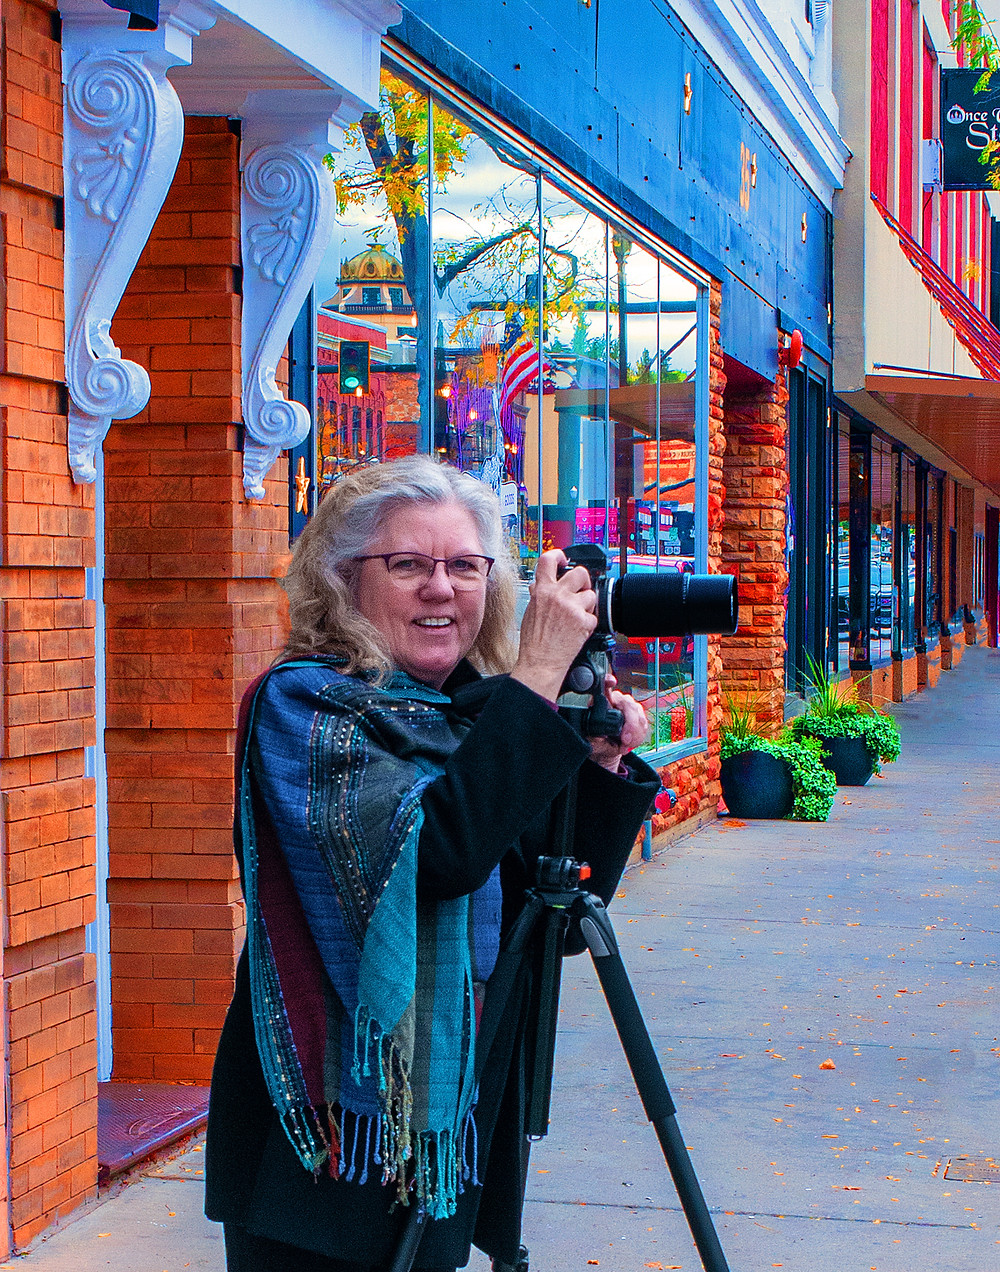 Becky smiles at the camera while holding her own camera on a tripod. She is wearing a blue shawl and standing in front of Frackelton's Restaurant.